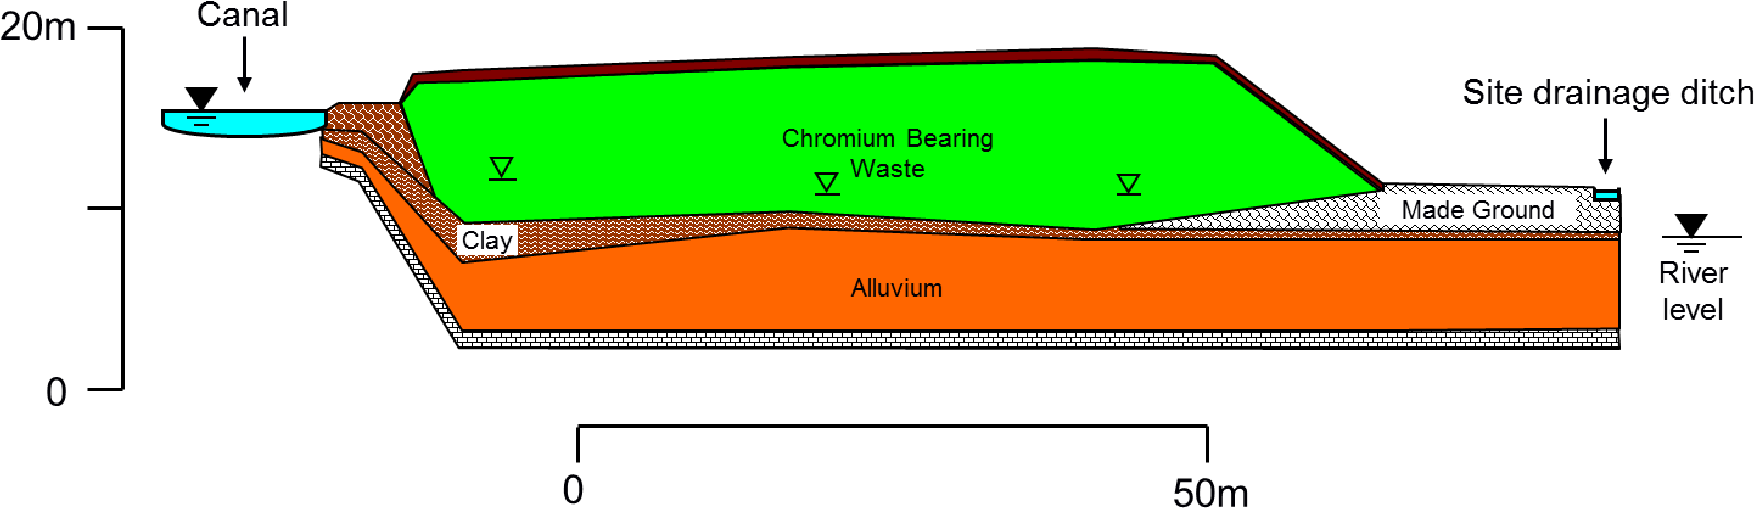 Figure 2.7 Simplified geological cross section showing waste position, constructed from borehole logs produced during professional site investigations (Whittleston et al., 2007)